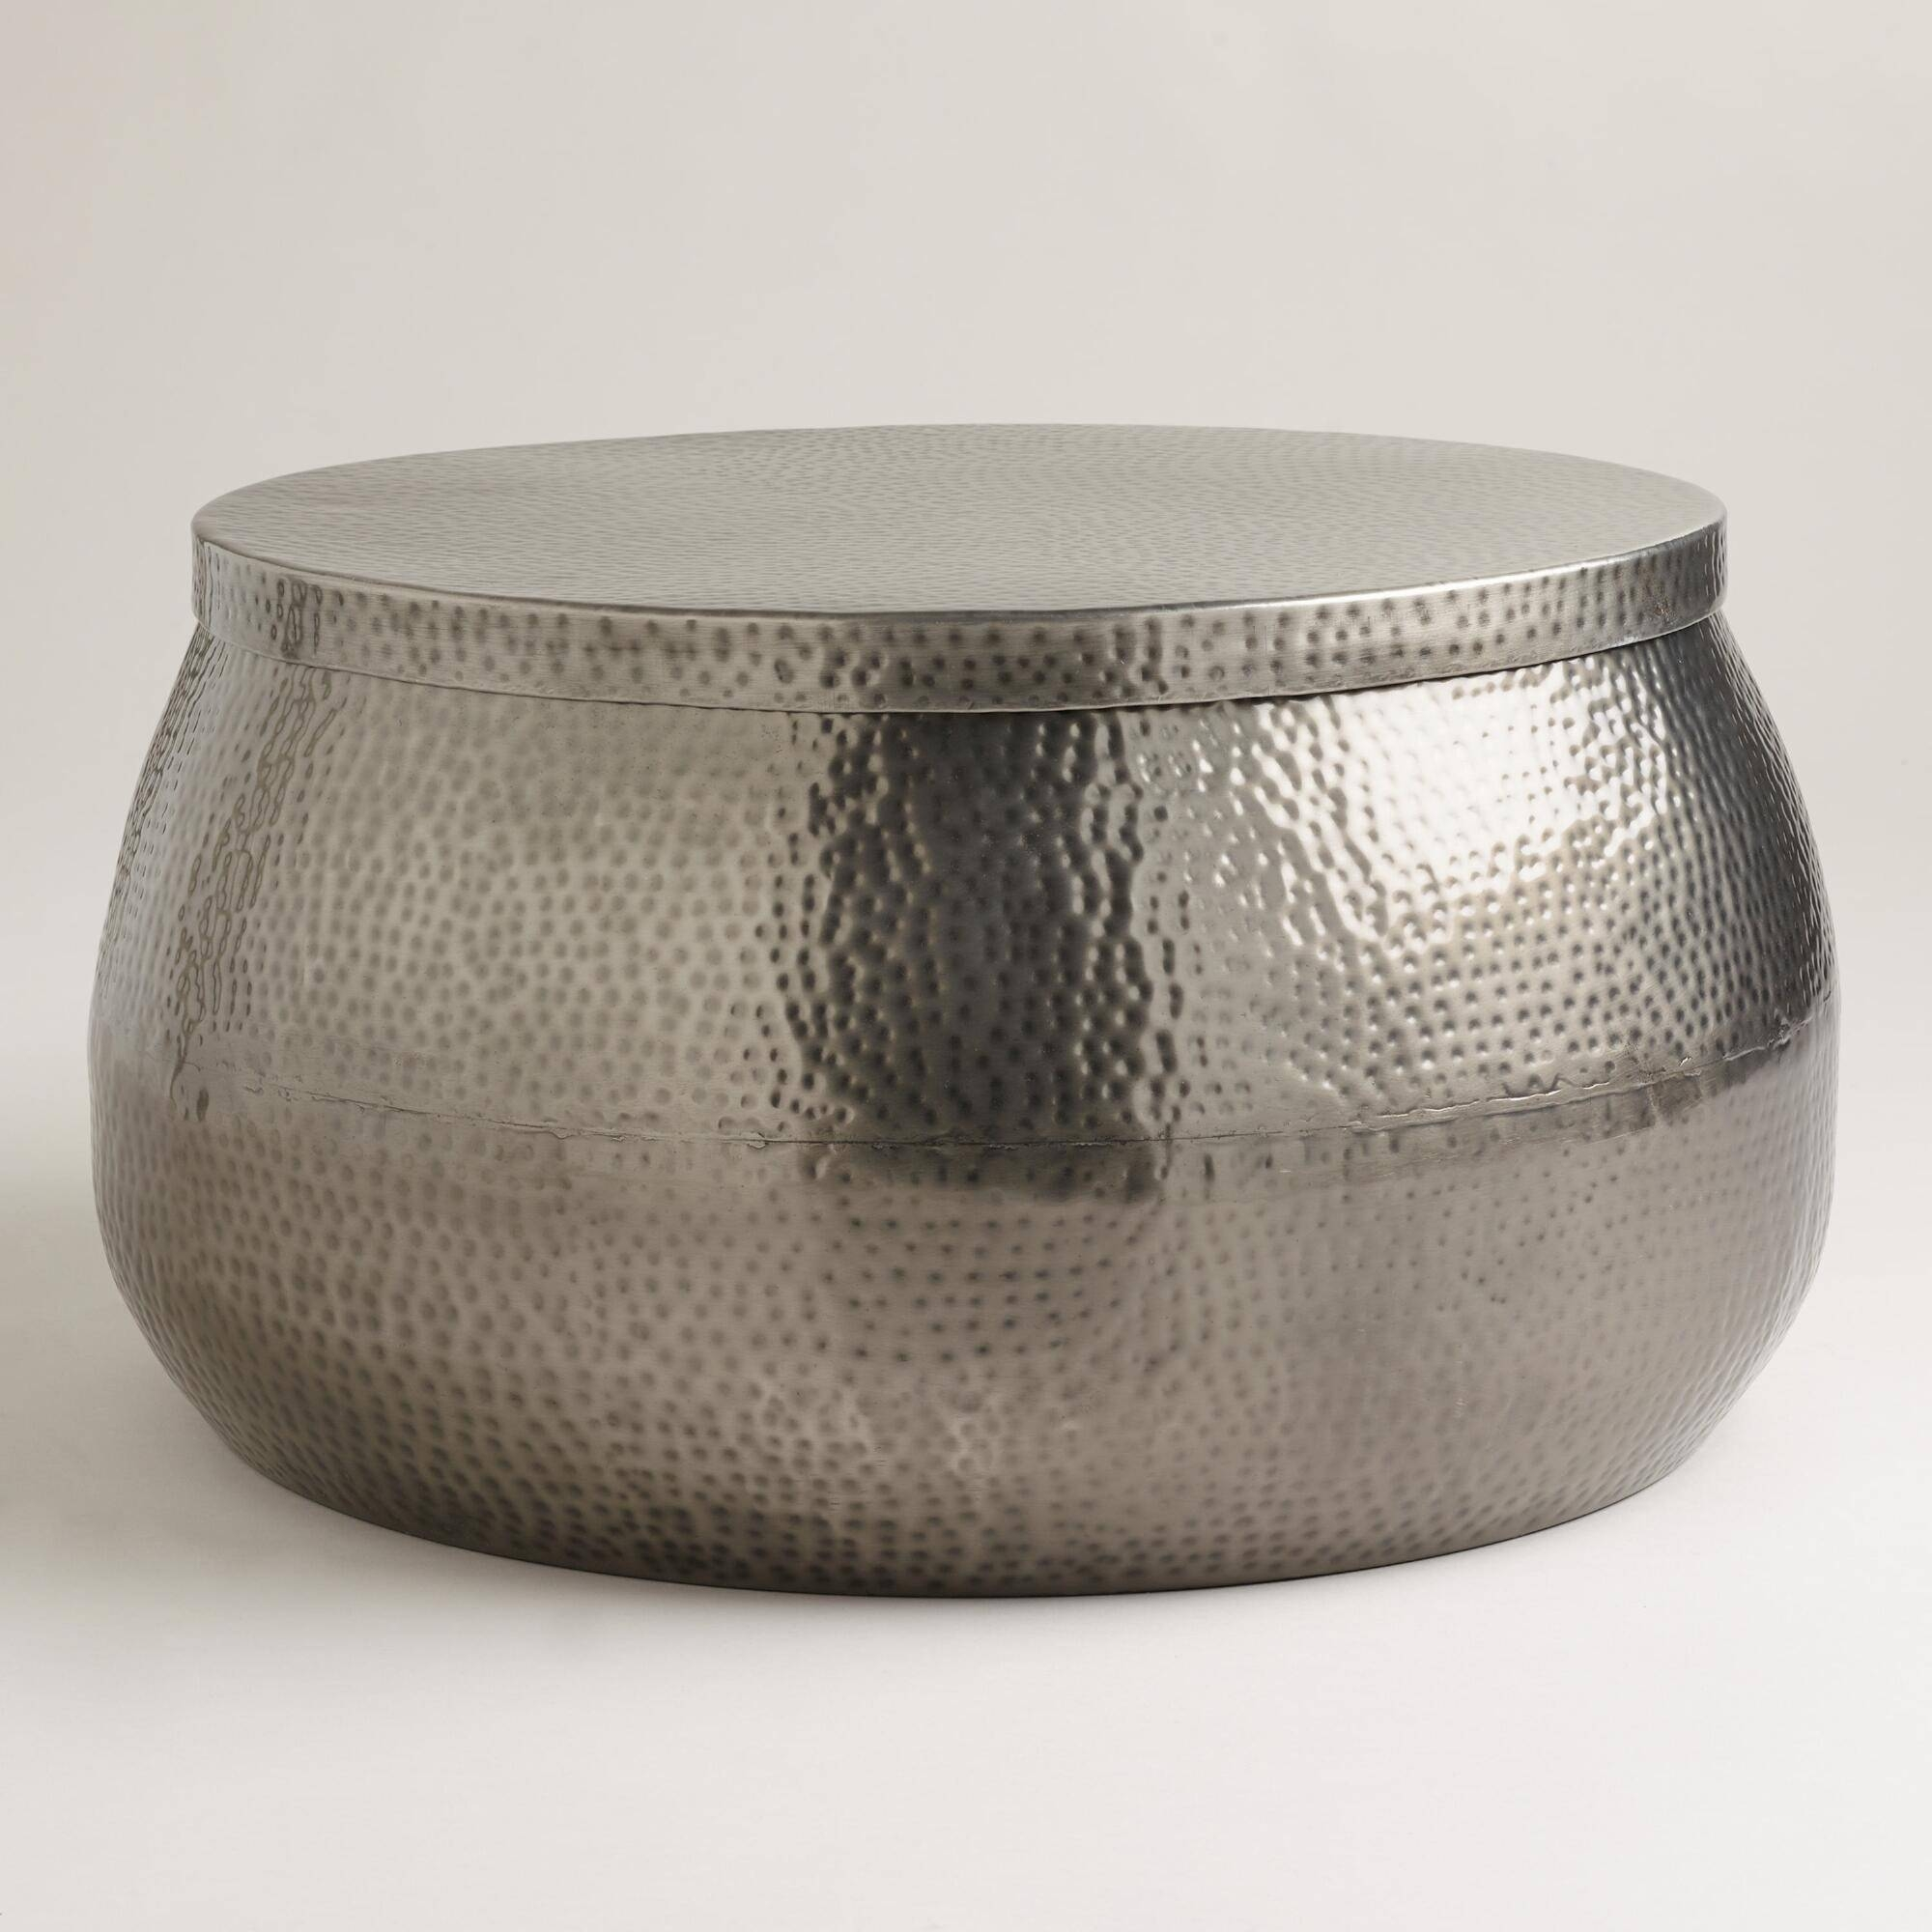 Furniture. Hammered Coffee Table Ideas: Silver Round Unique with regard to Hammered Silver Coffee Tables (Image 13 of 30)